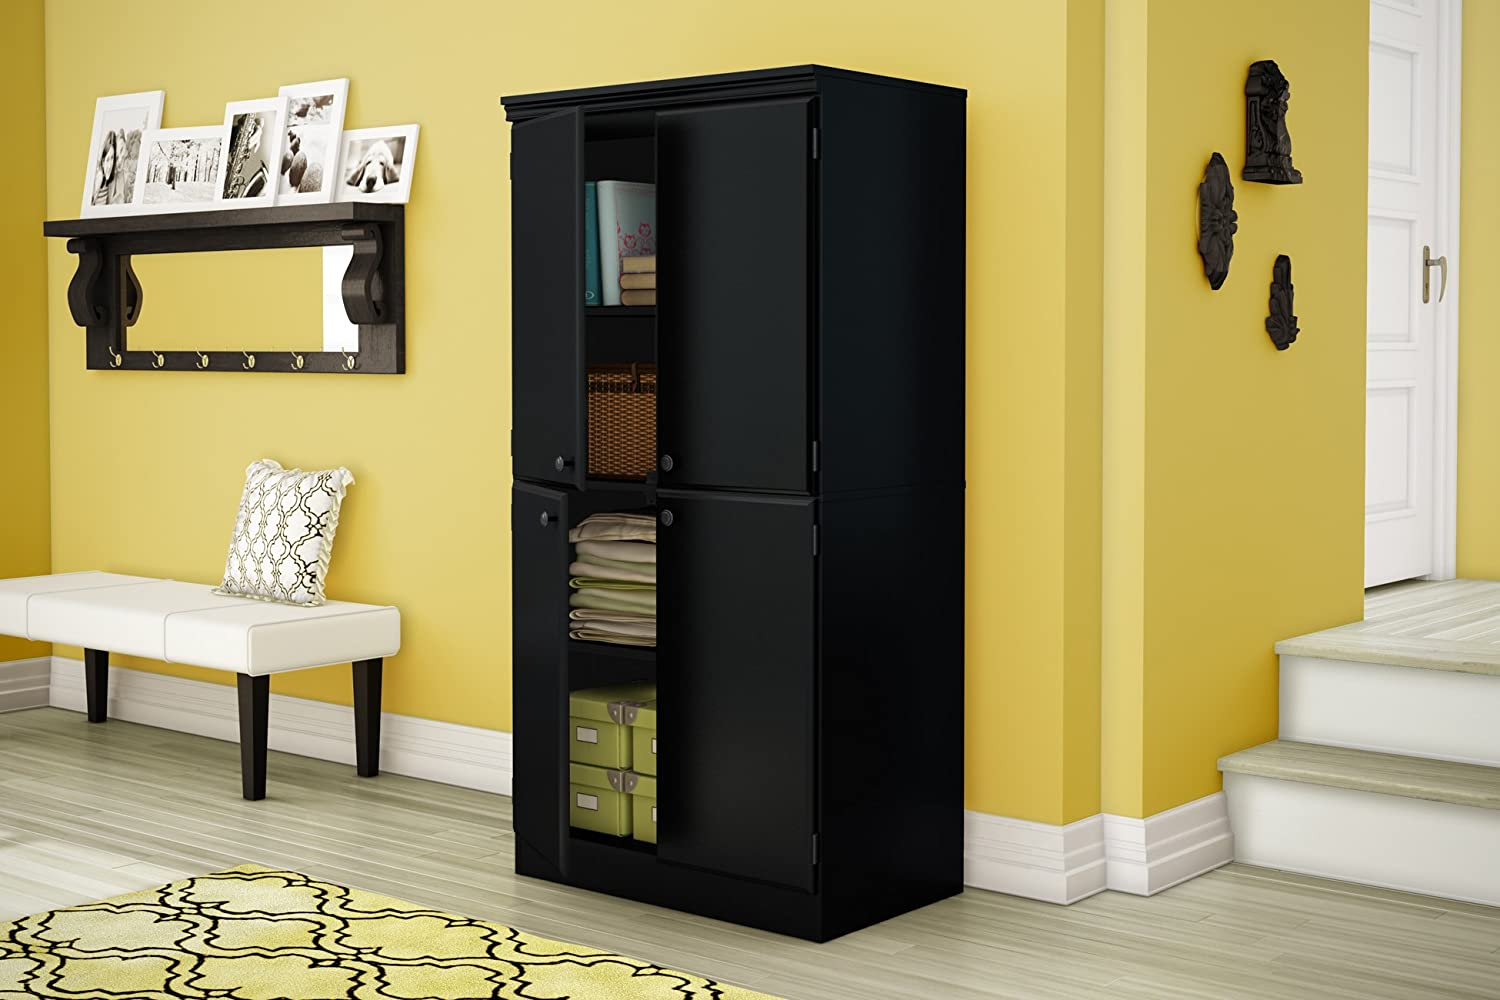 amazon com south shore morgan collection storage cabinet pure amazon com south shore morgan collection storage cabinet pure black kitchen dining